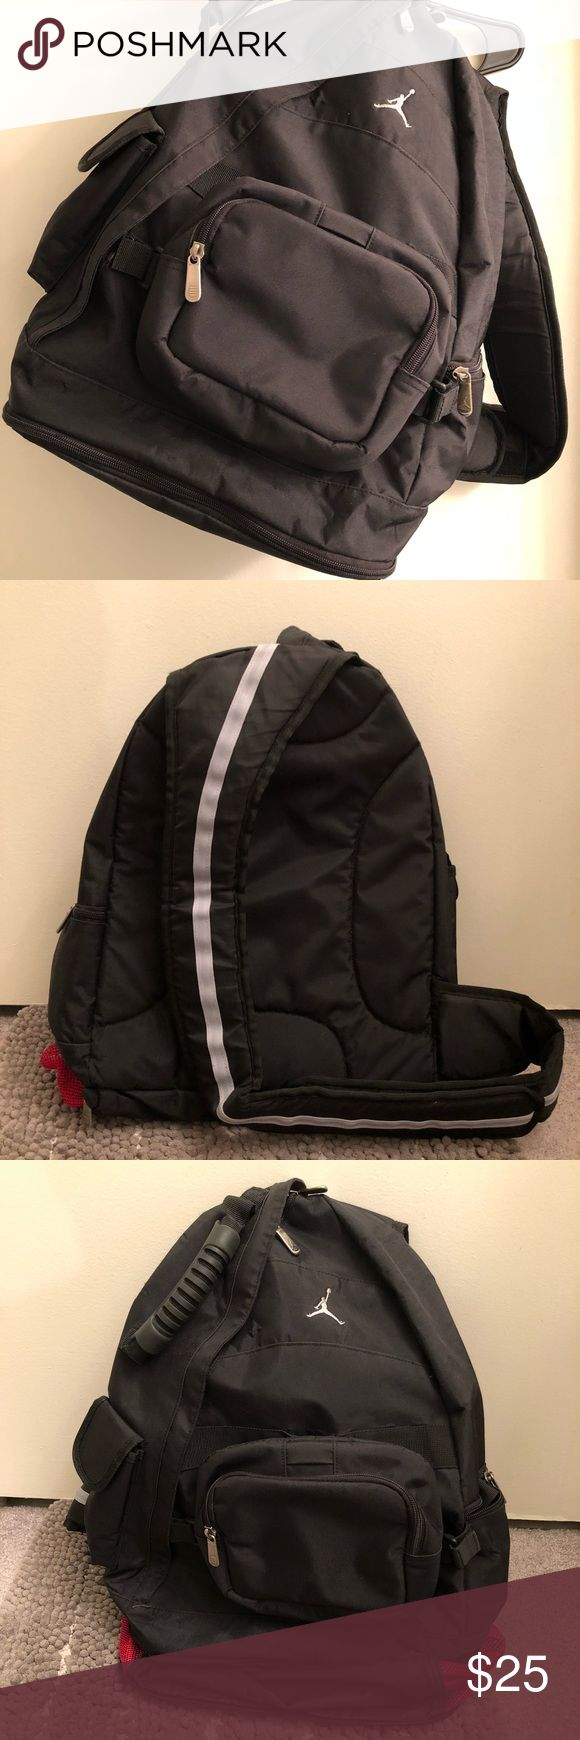 """Nike Jordan Single Strap Backpack Nike Jordan Single strap back pack. Used but still in Great condition. Very well taken care of. All zippers work. Can unzip to allow for more storage. Measurements taken while laying flat: 13"""" wide. Closed 16"""". 25"""" unzipped. Nike Bags Backpacks"""